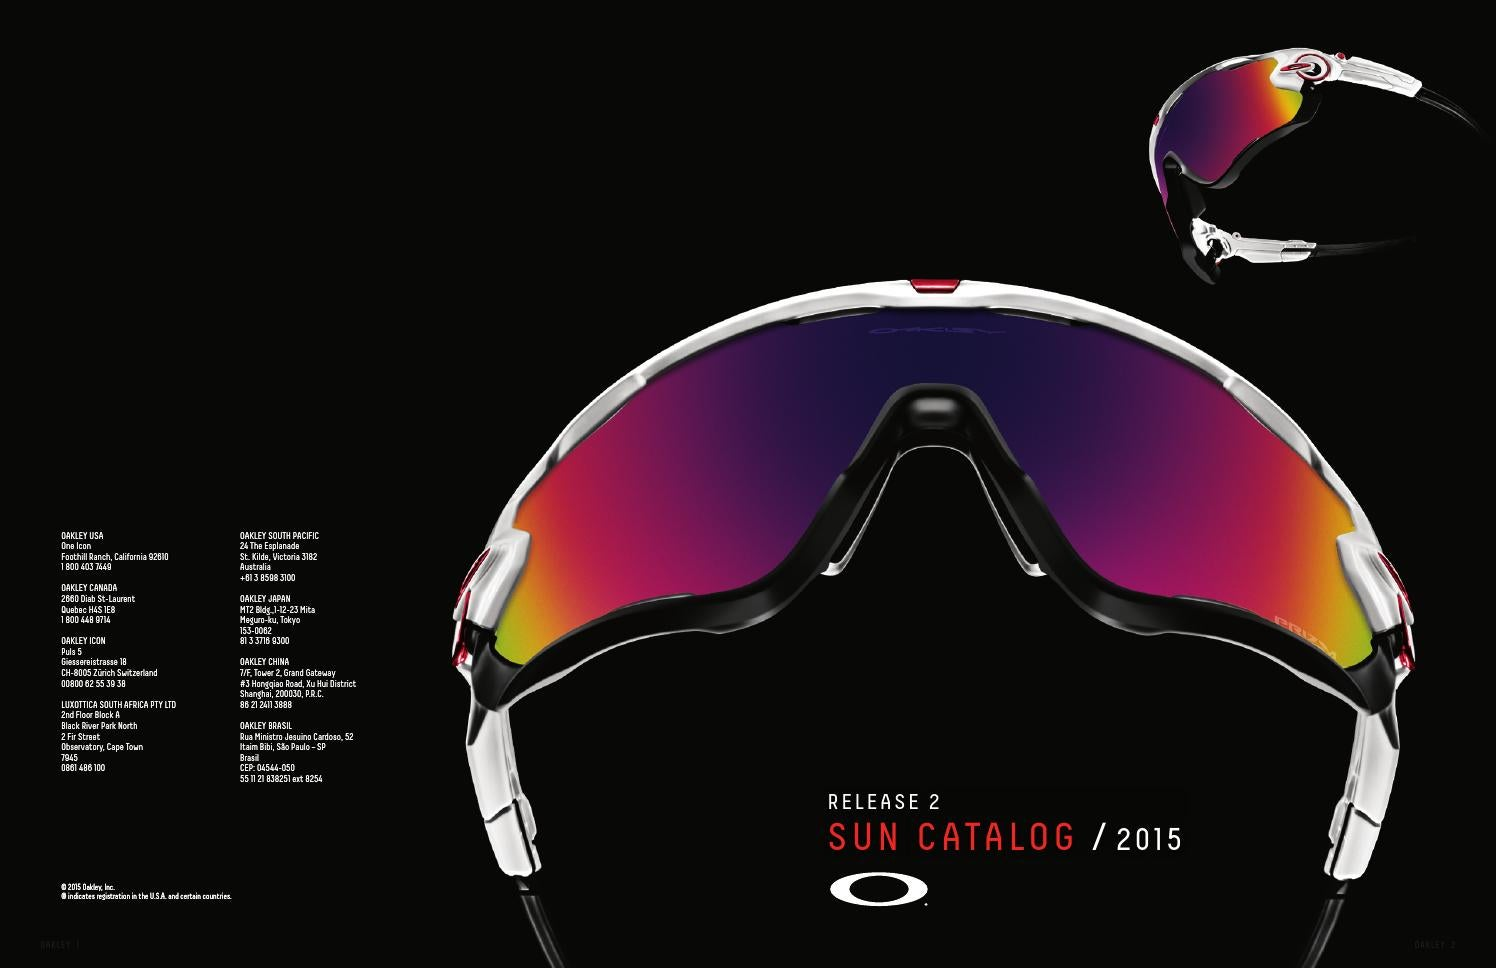 6c6cafa819e R2 eyewear catalog(1) by Matthew Weisman - issuu